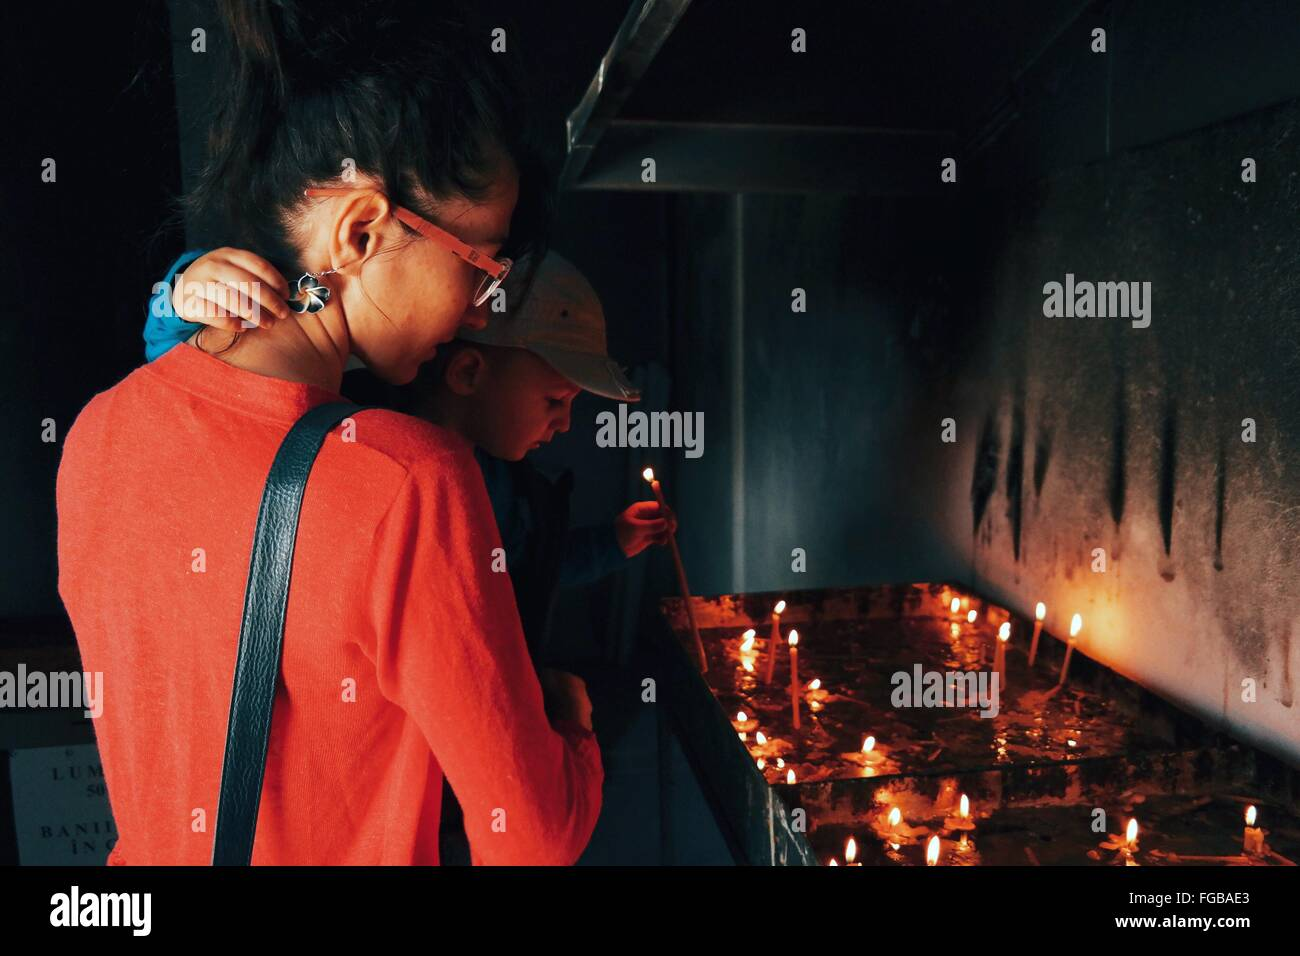 Son Holding Candle With Mother In Church - Stock Image